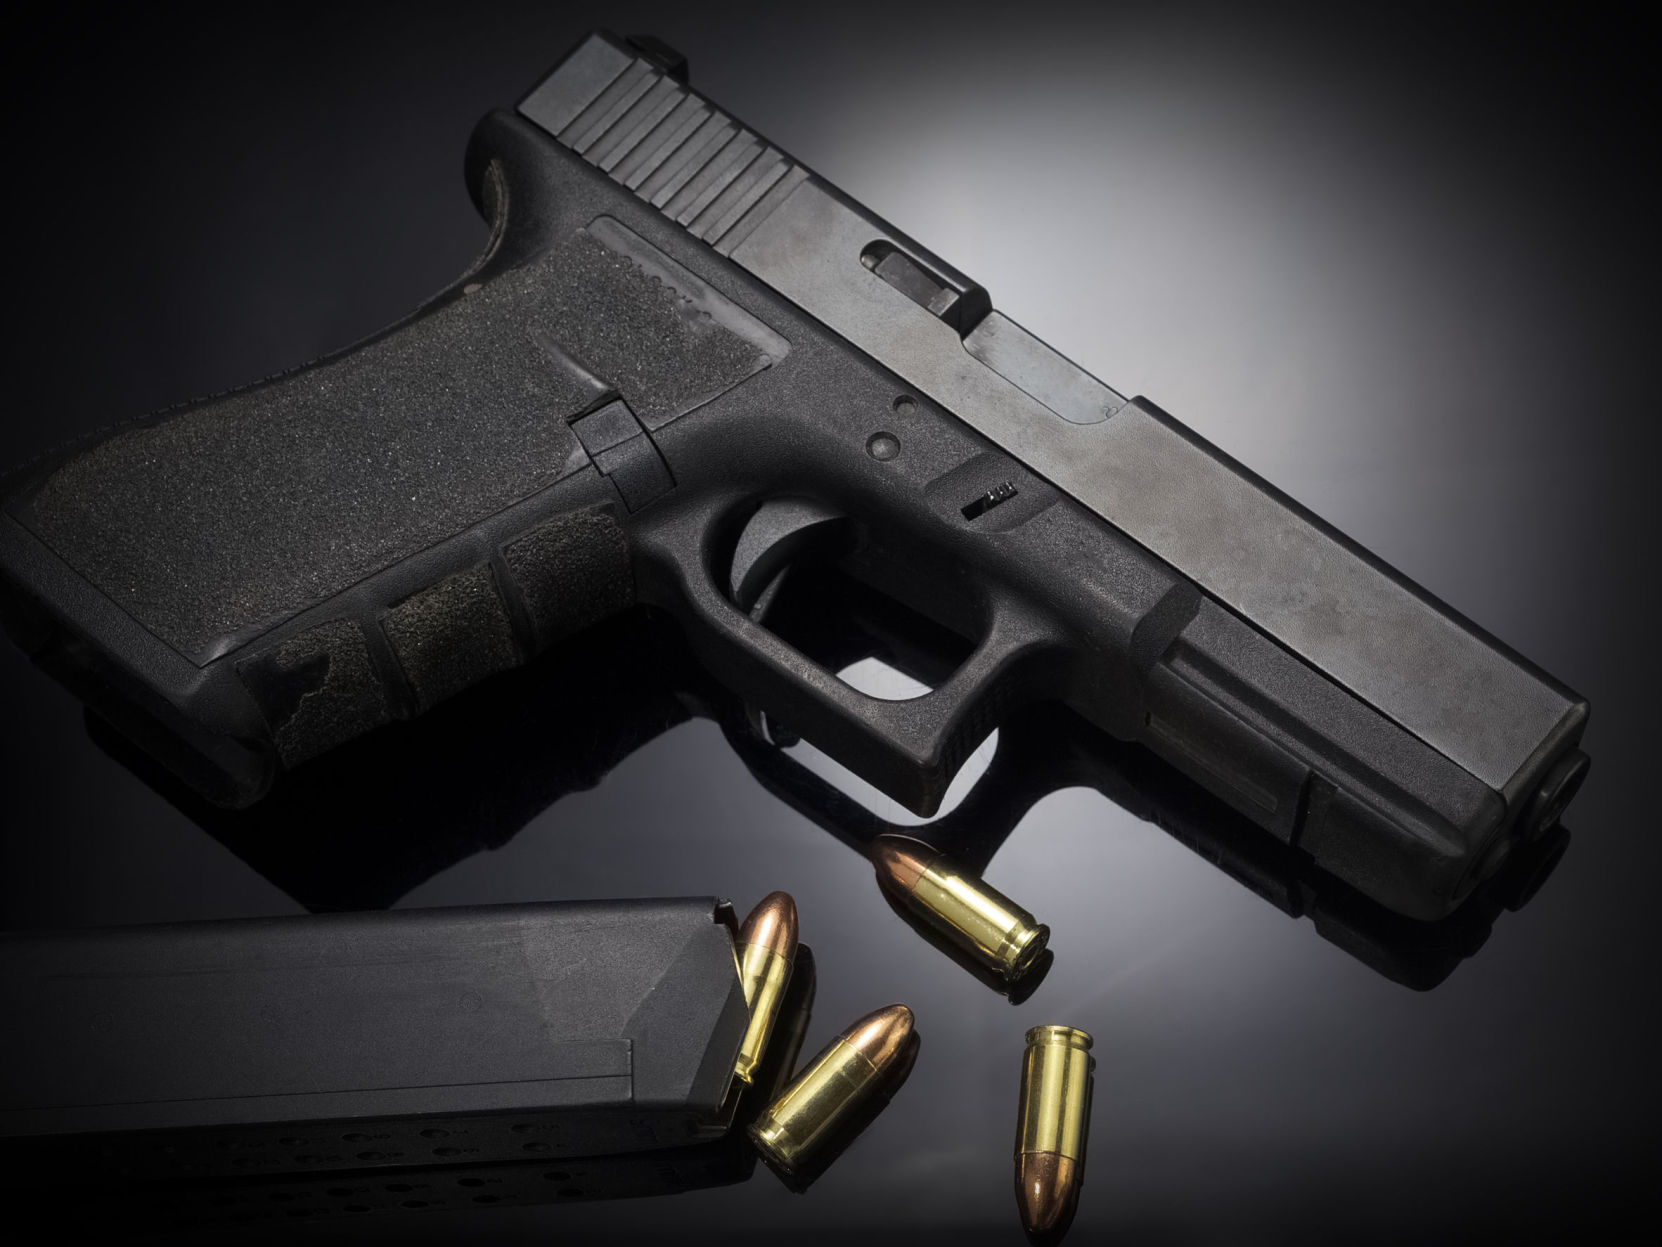 New Missouri gun law changes the rules but some restrictions